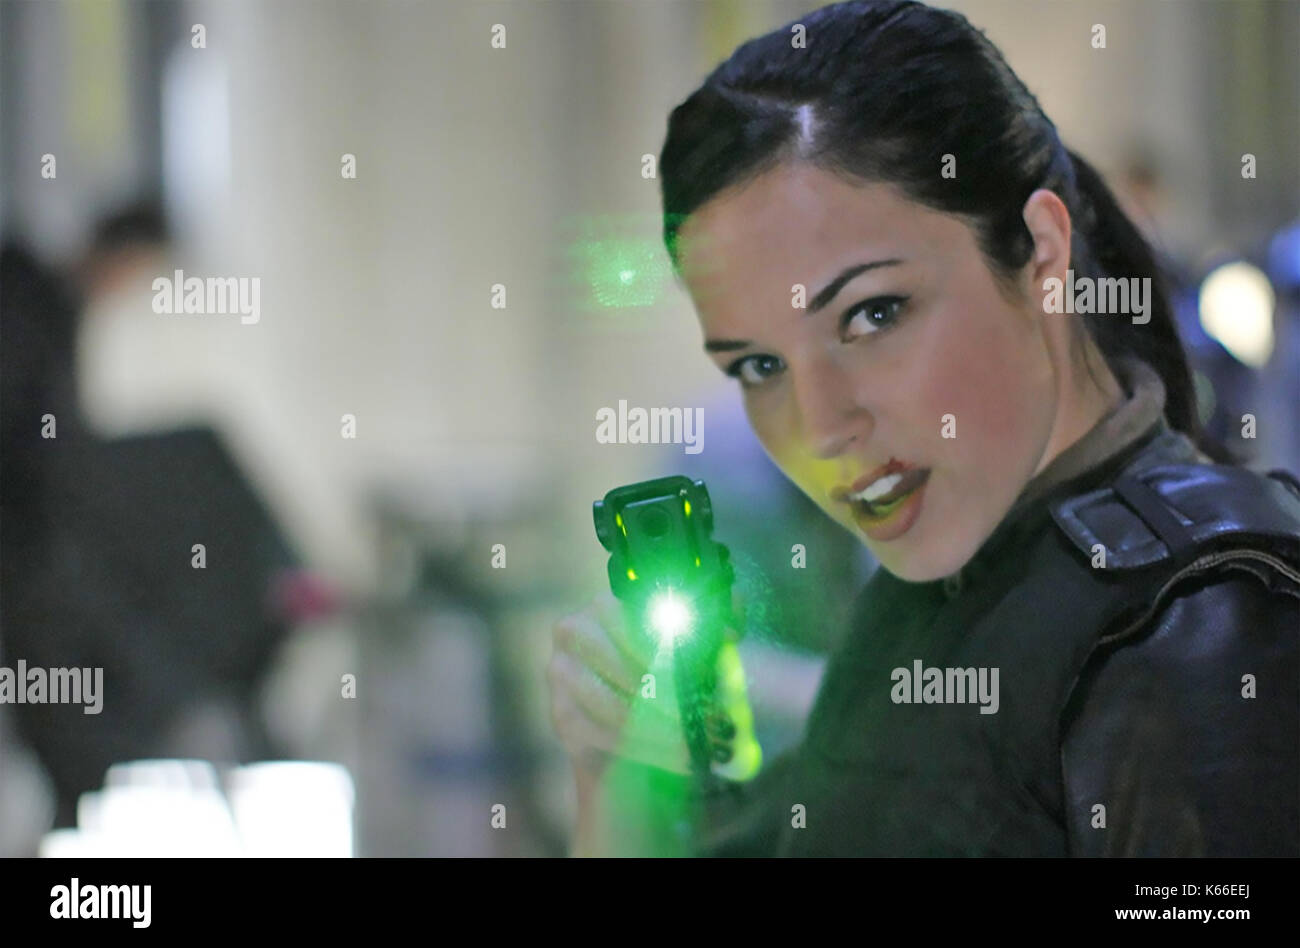 THE ANOMALY 2014 Universal Pictures film with Alexis Knapp - Stock Image